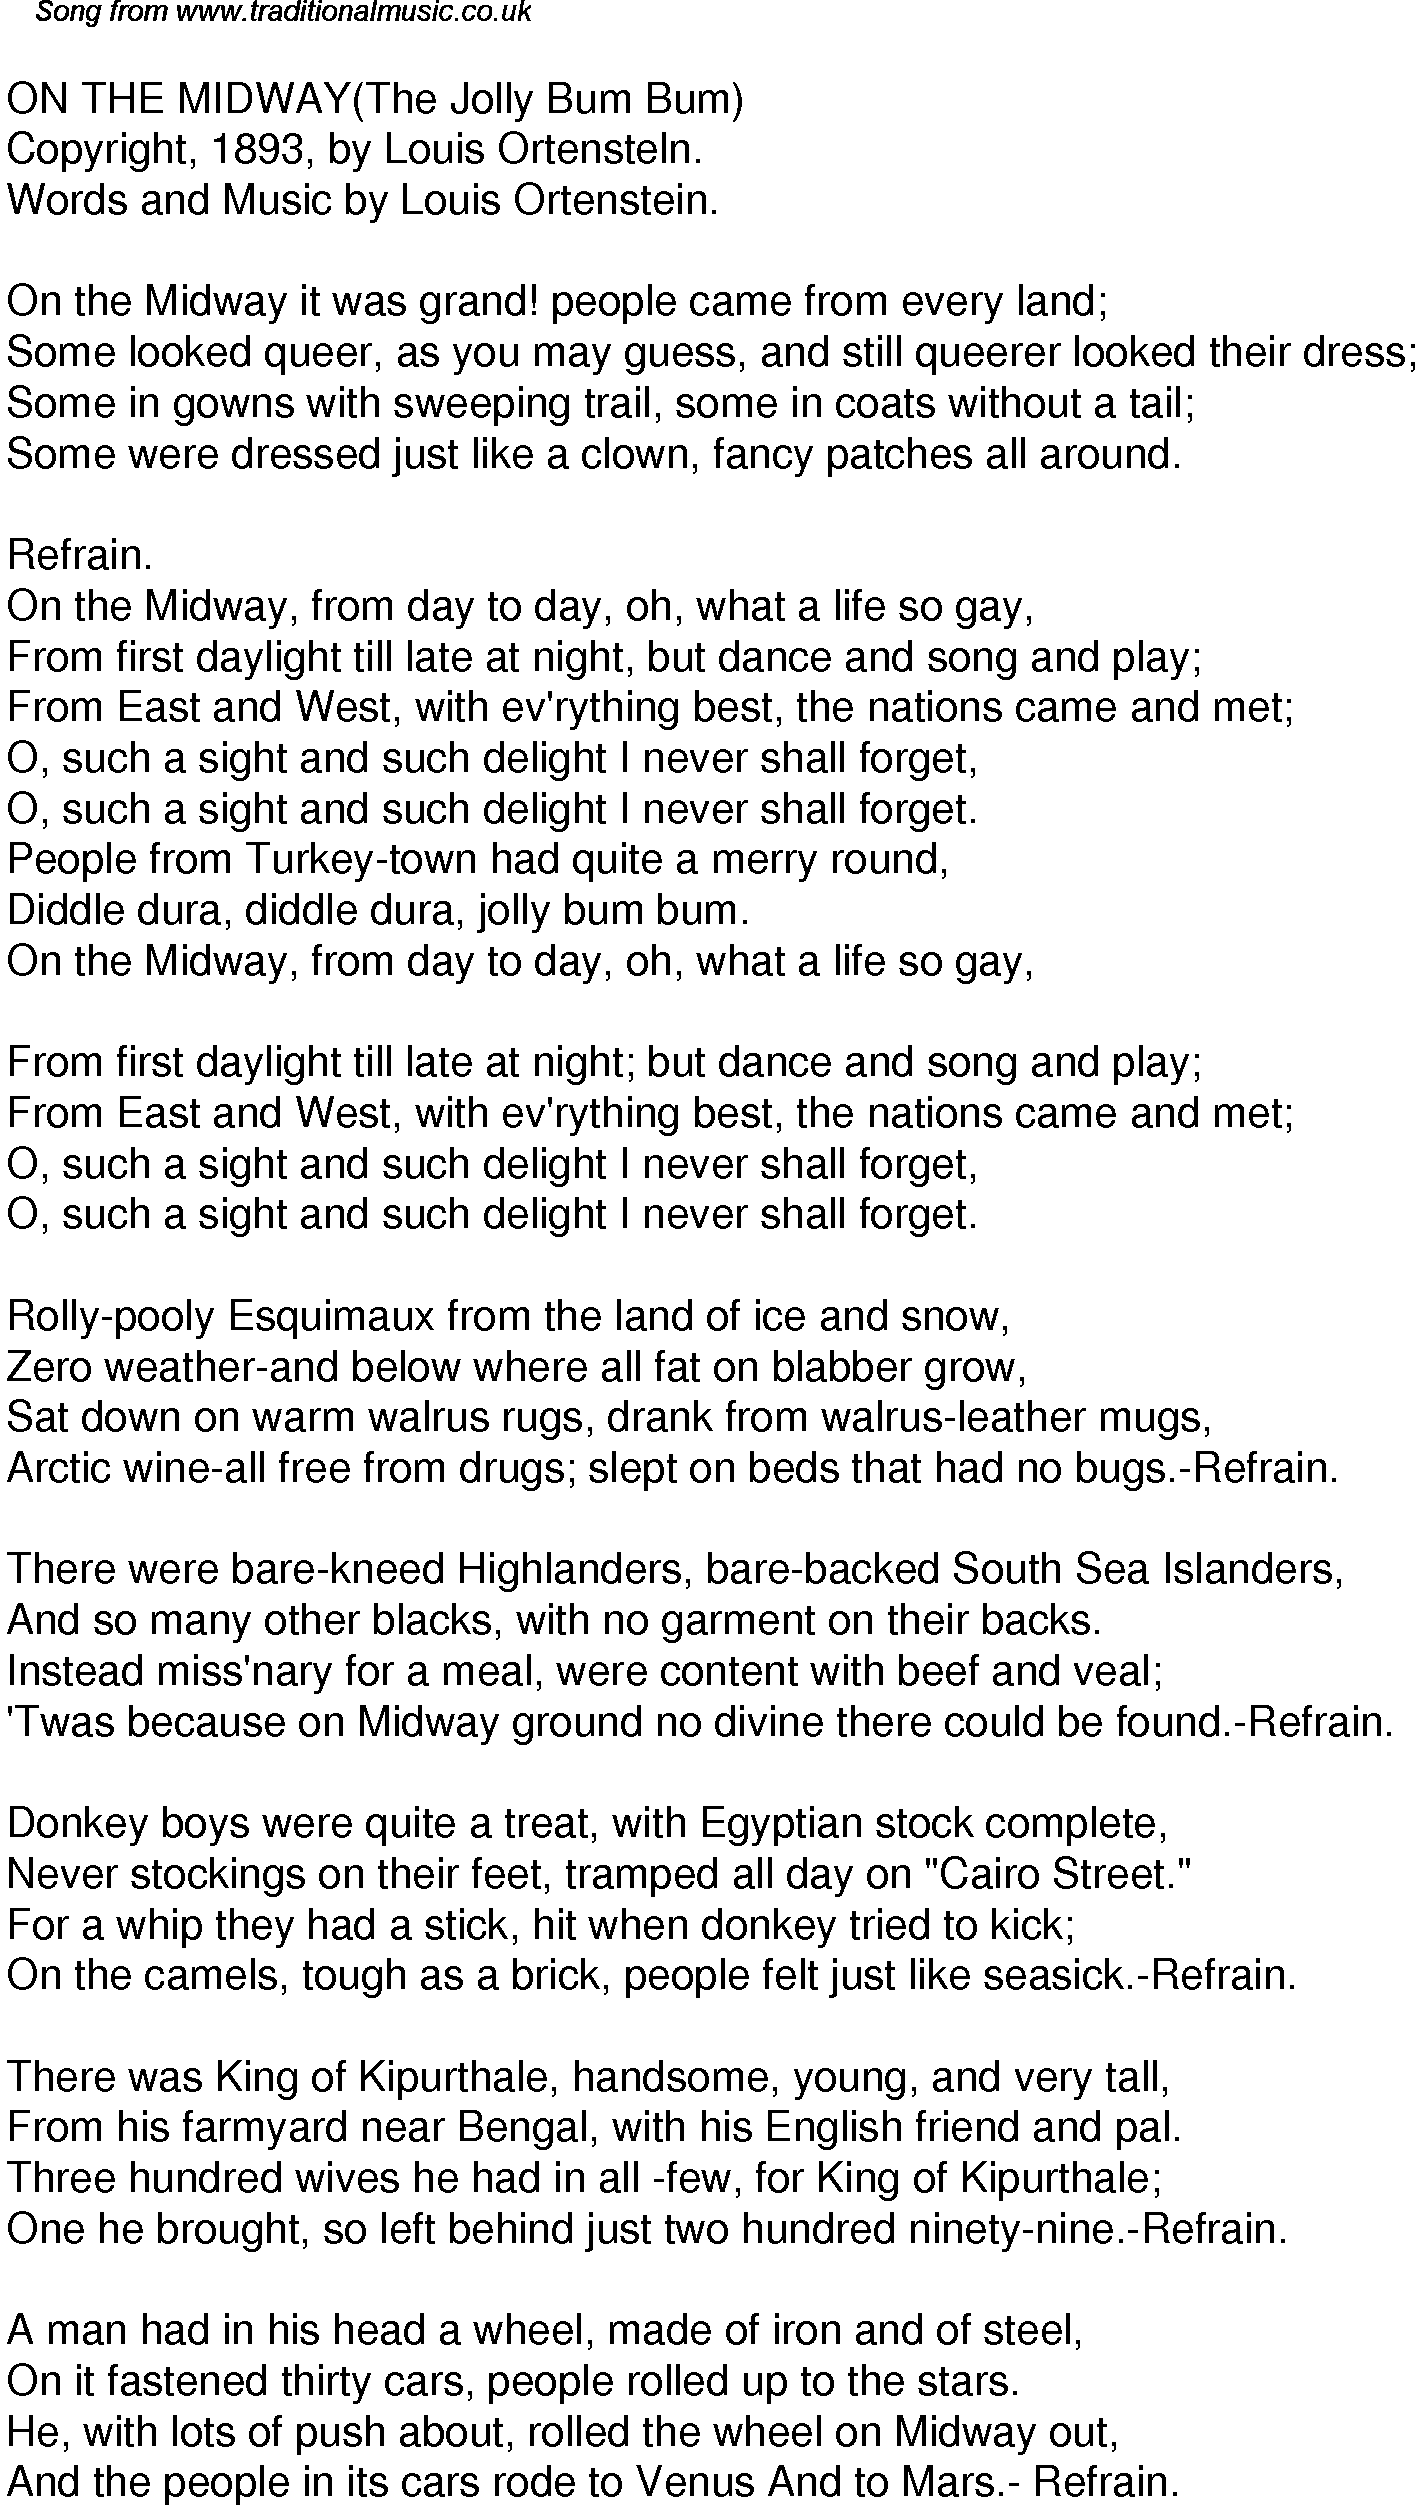 Old Time Song Lyrics for 41 On The Midway The Jolly Bum Bum